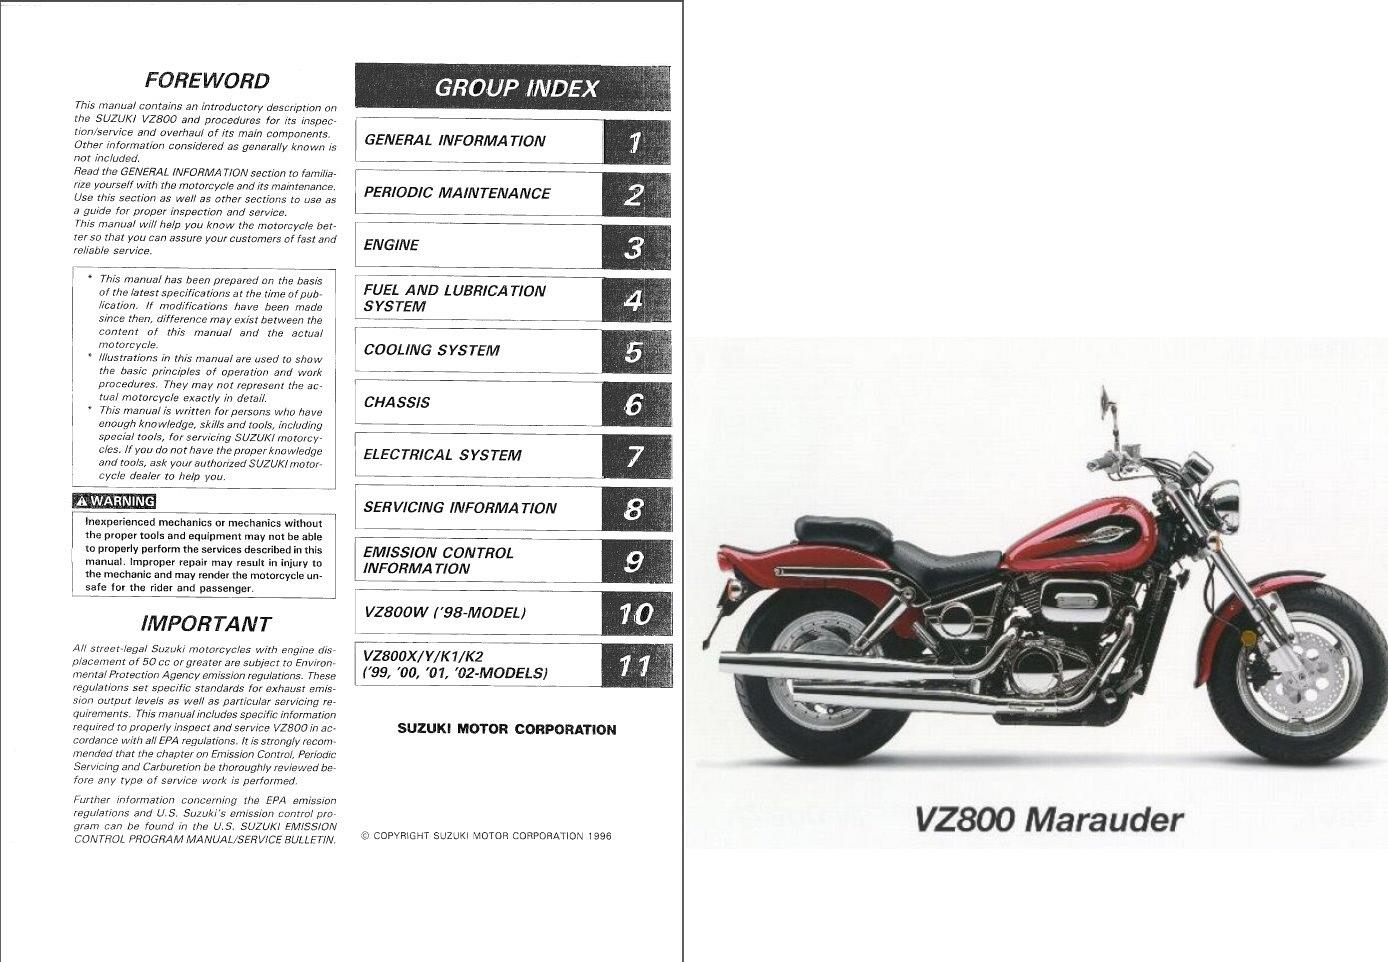 1997-2003 Suzuki VZ800 Marauder 800 Service & Parts Manual